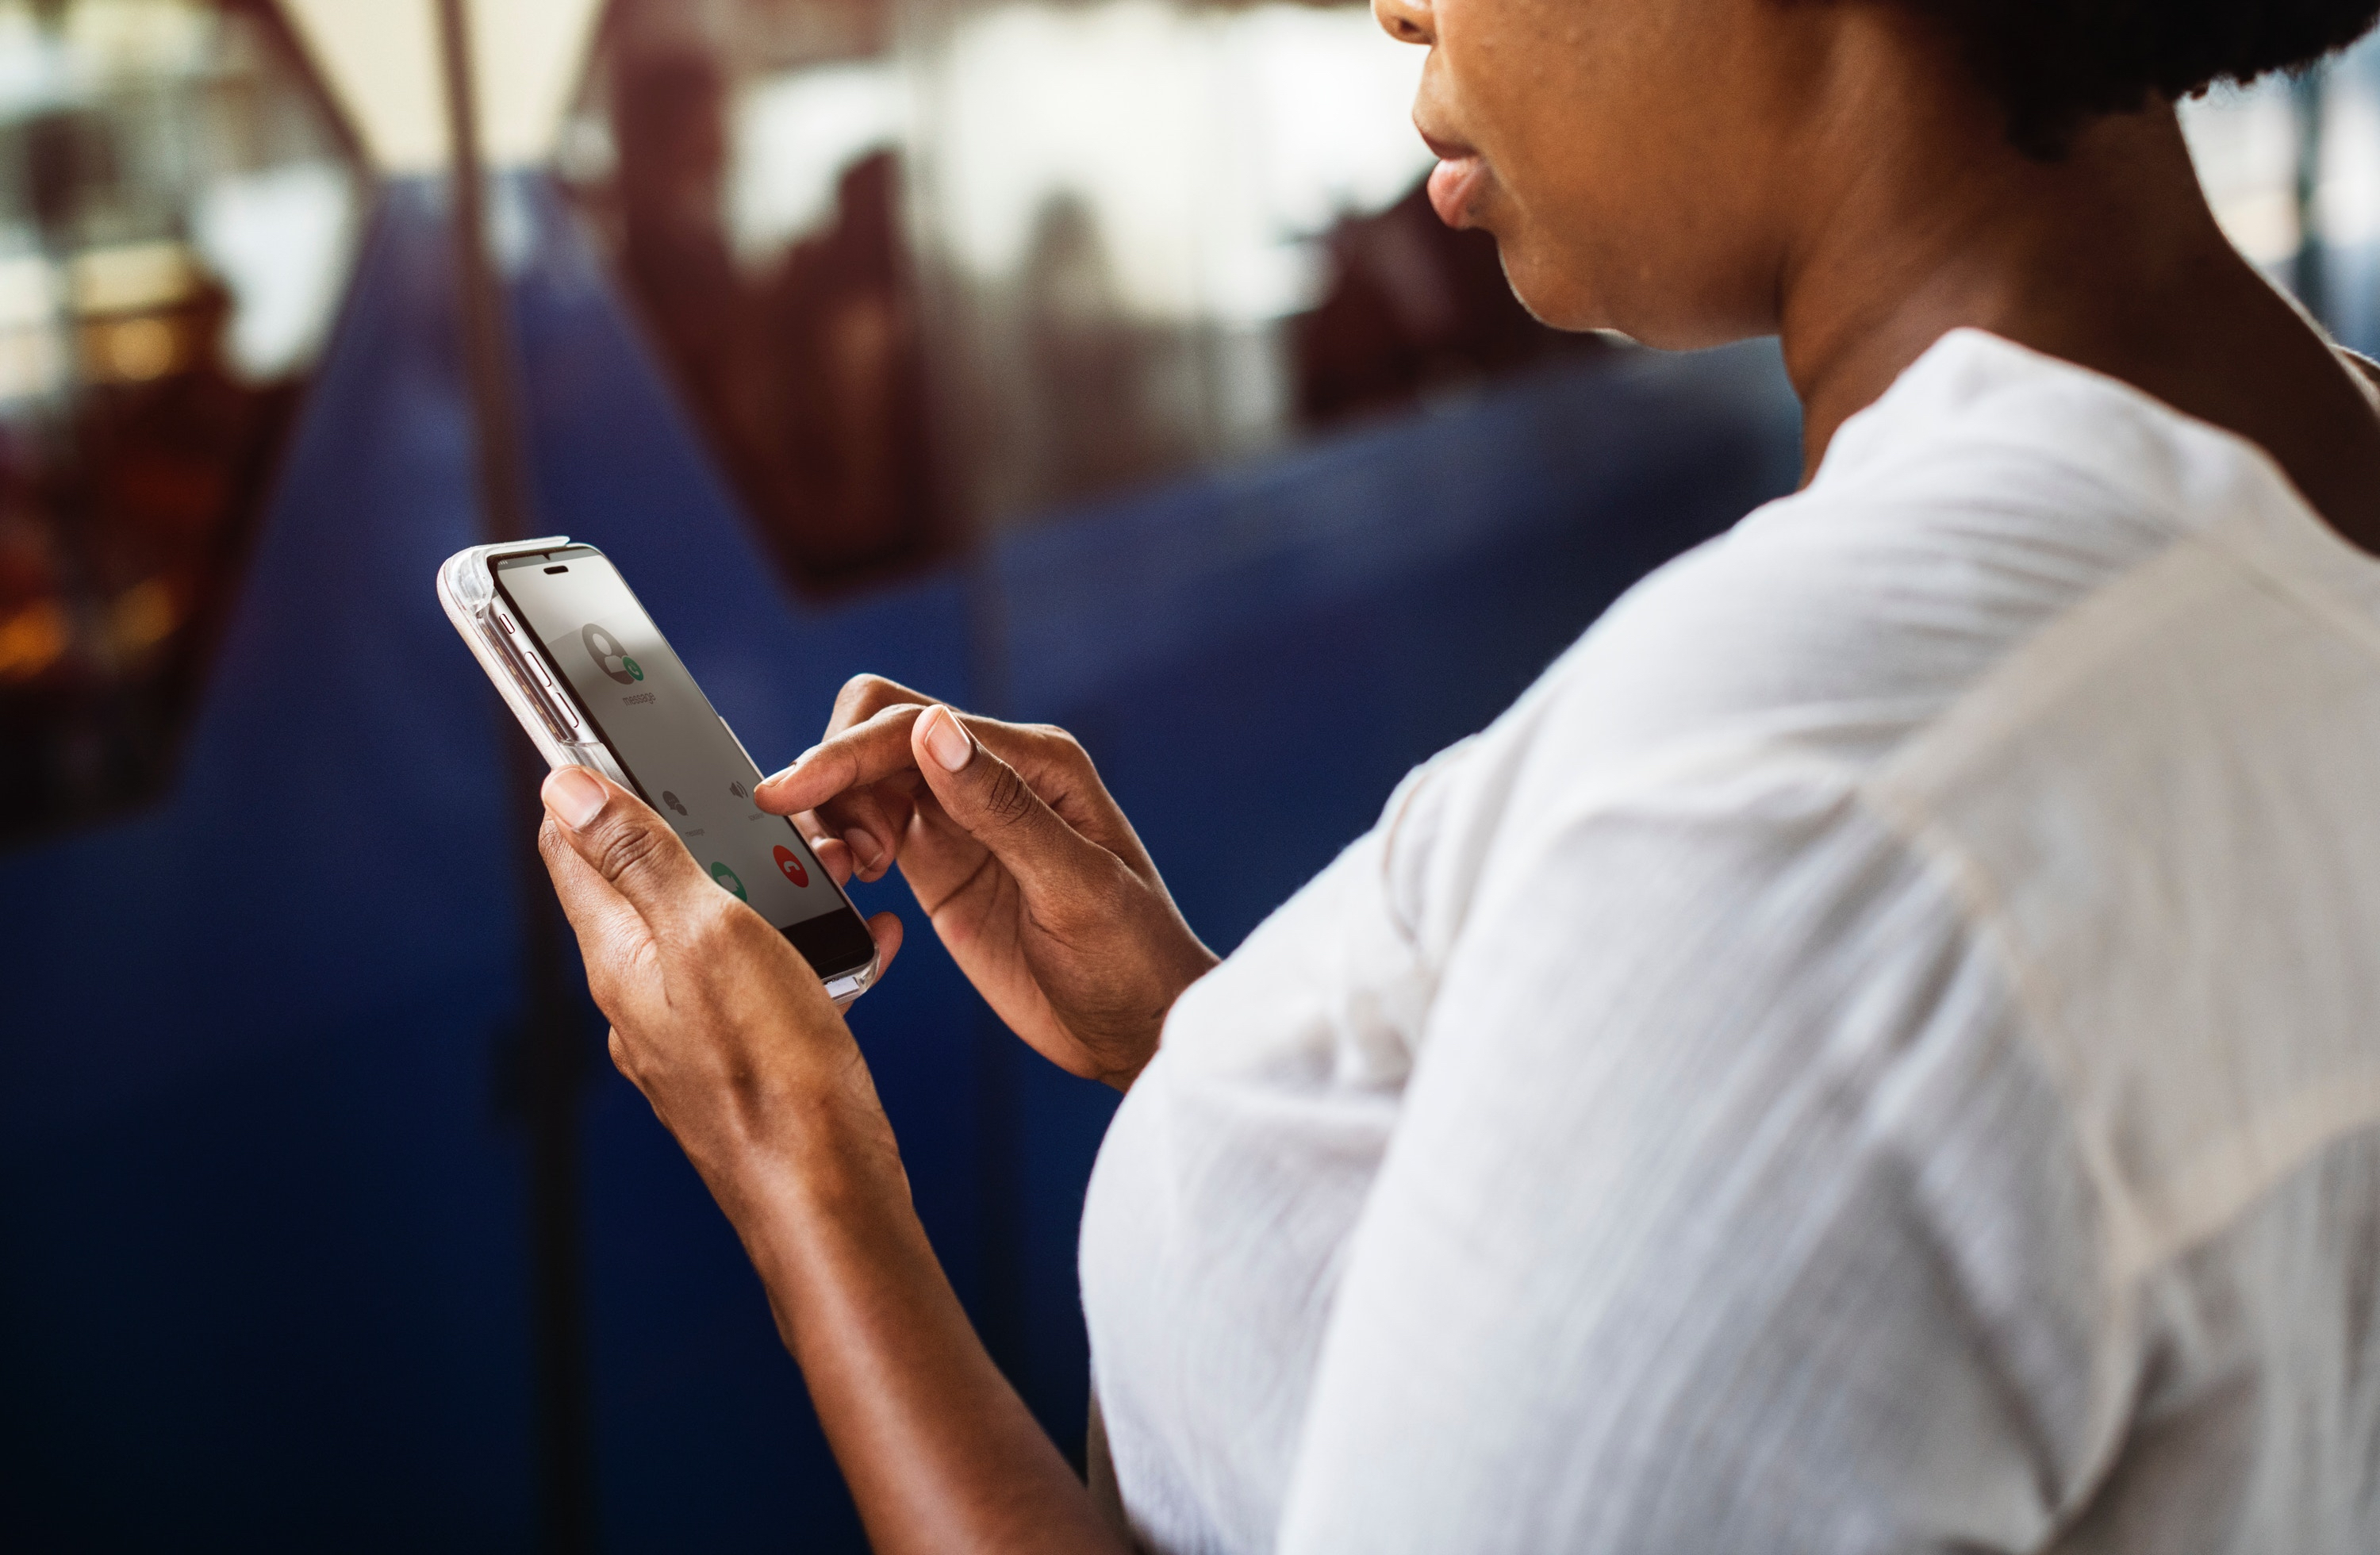 stop unwanted spam phone calls – woman considering whether to answer the phone